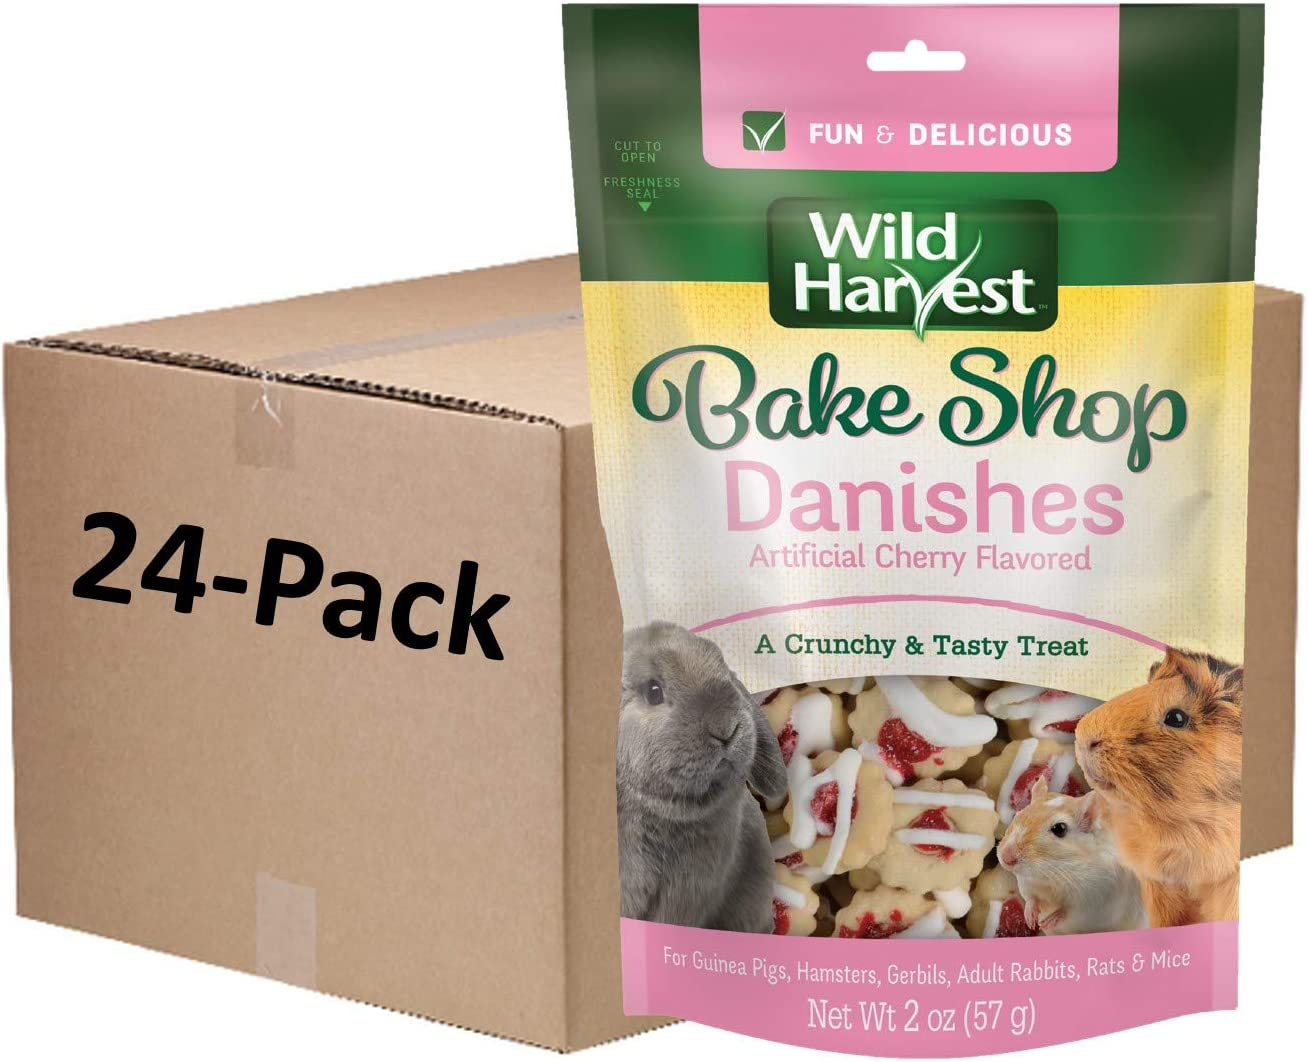 Wild Harvest Bake Shop Danishes 2 Ounces, Artificial Cherry Flavored, Treats for Guinea Pigs, Hamsters, Gerbils, Adult Rabbits and More (1 CASE of 24 Individual Packs of 2 Ounce)